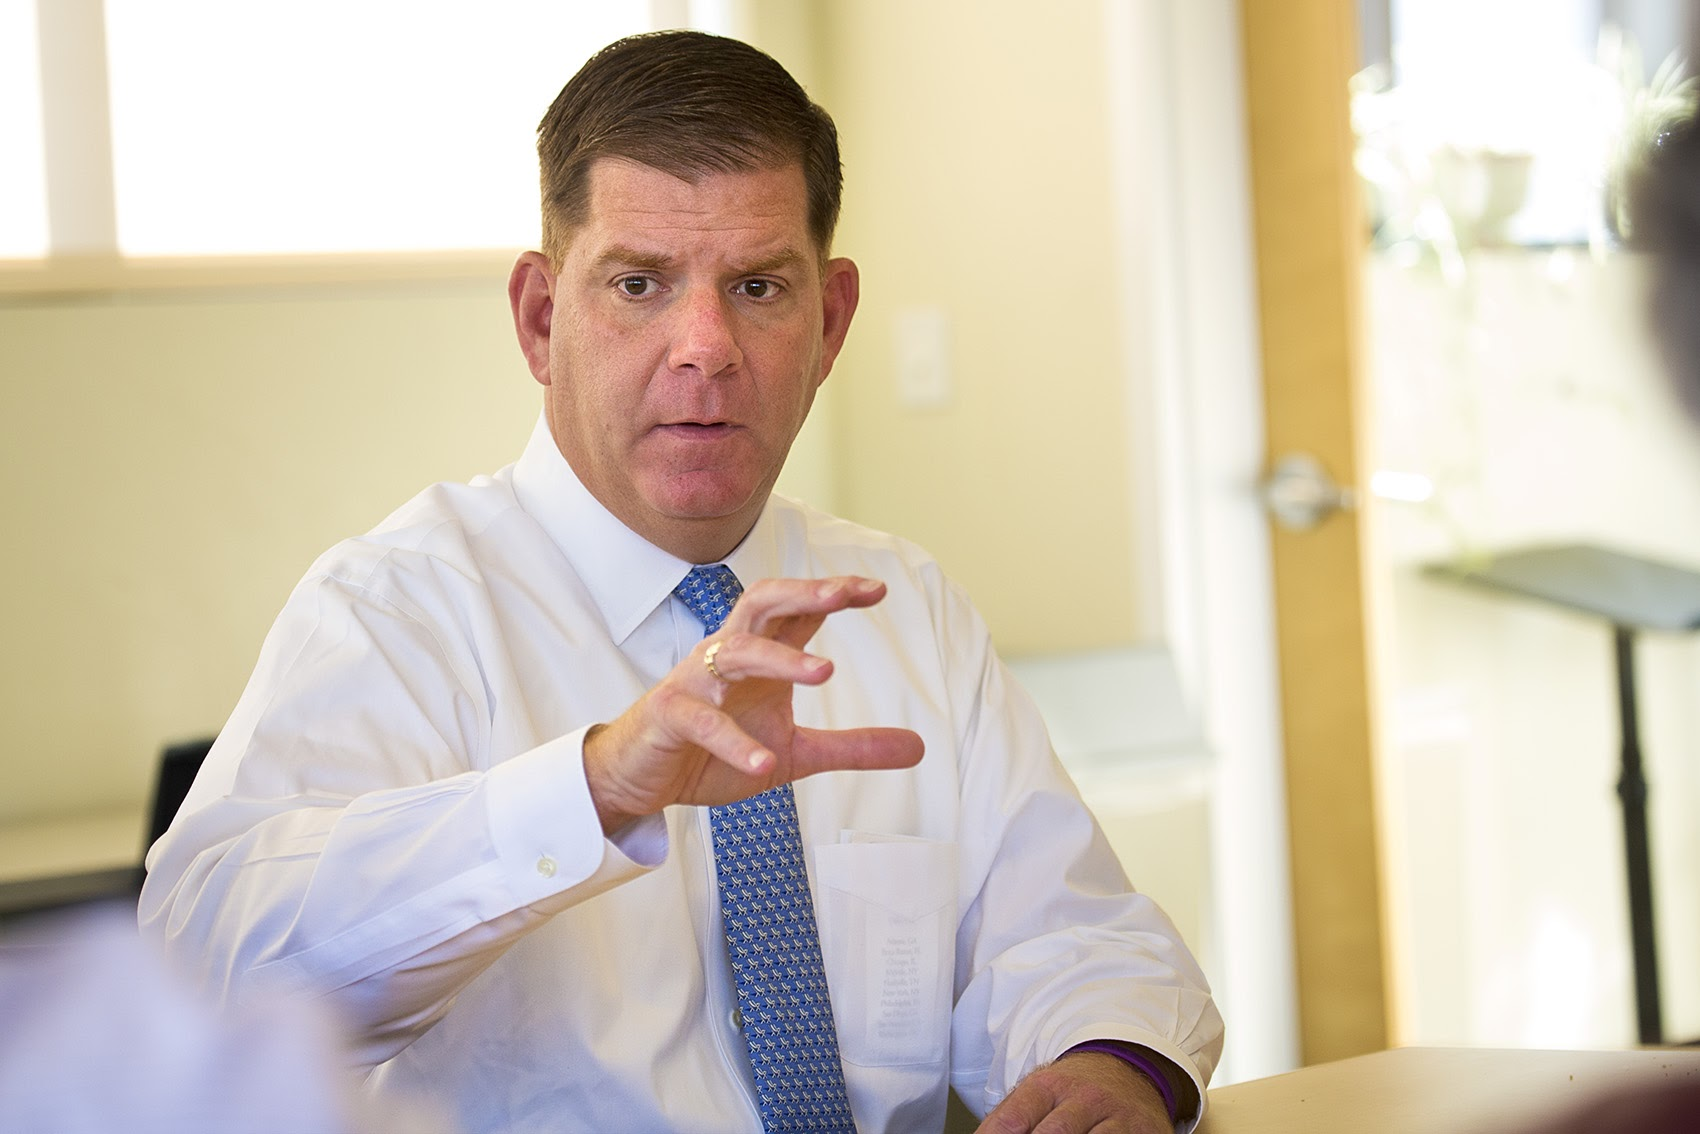 'It Is A Reality': Bostonians, Mayor Walsh Talk Race Relations And Divisions In City